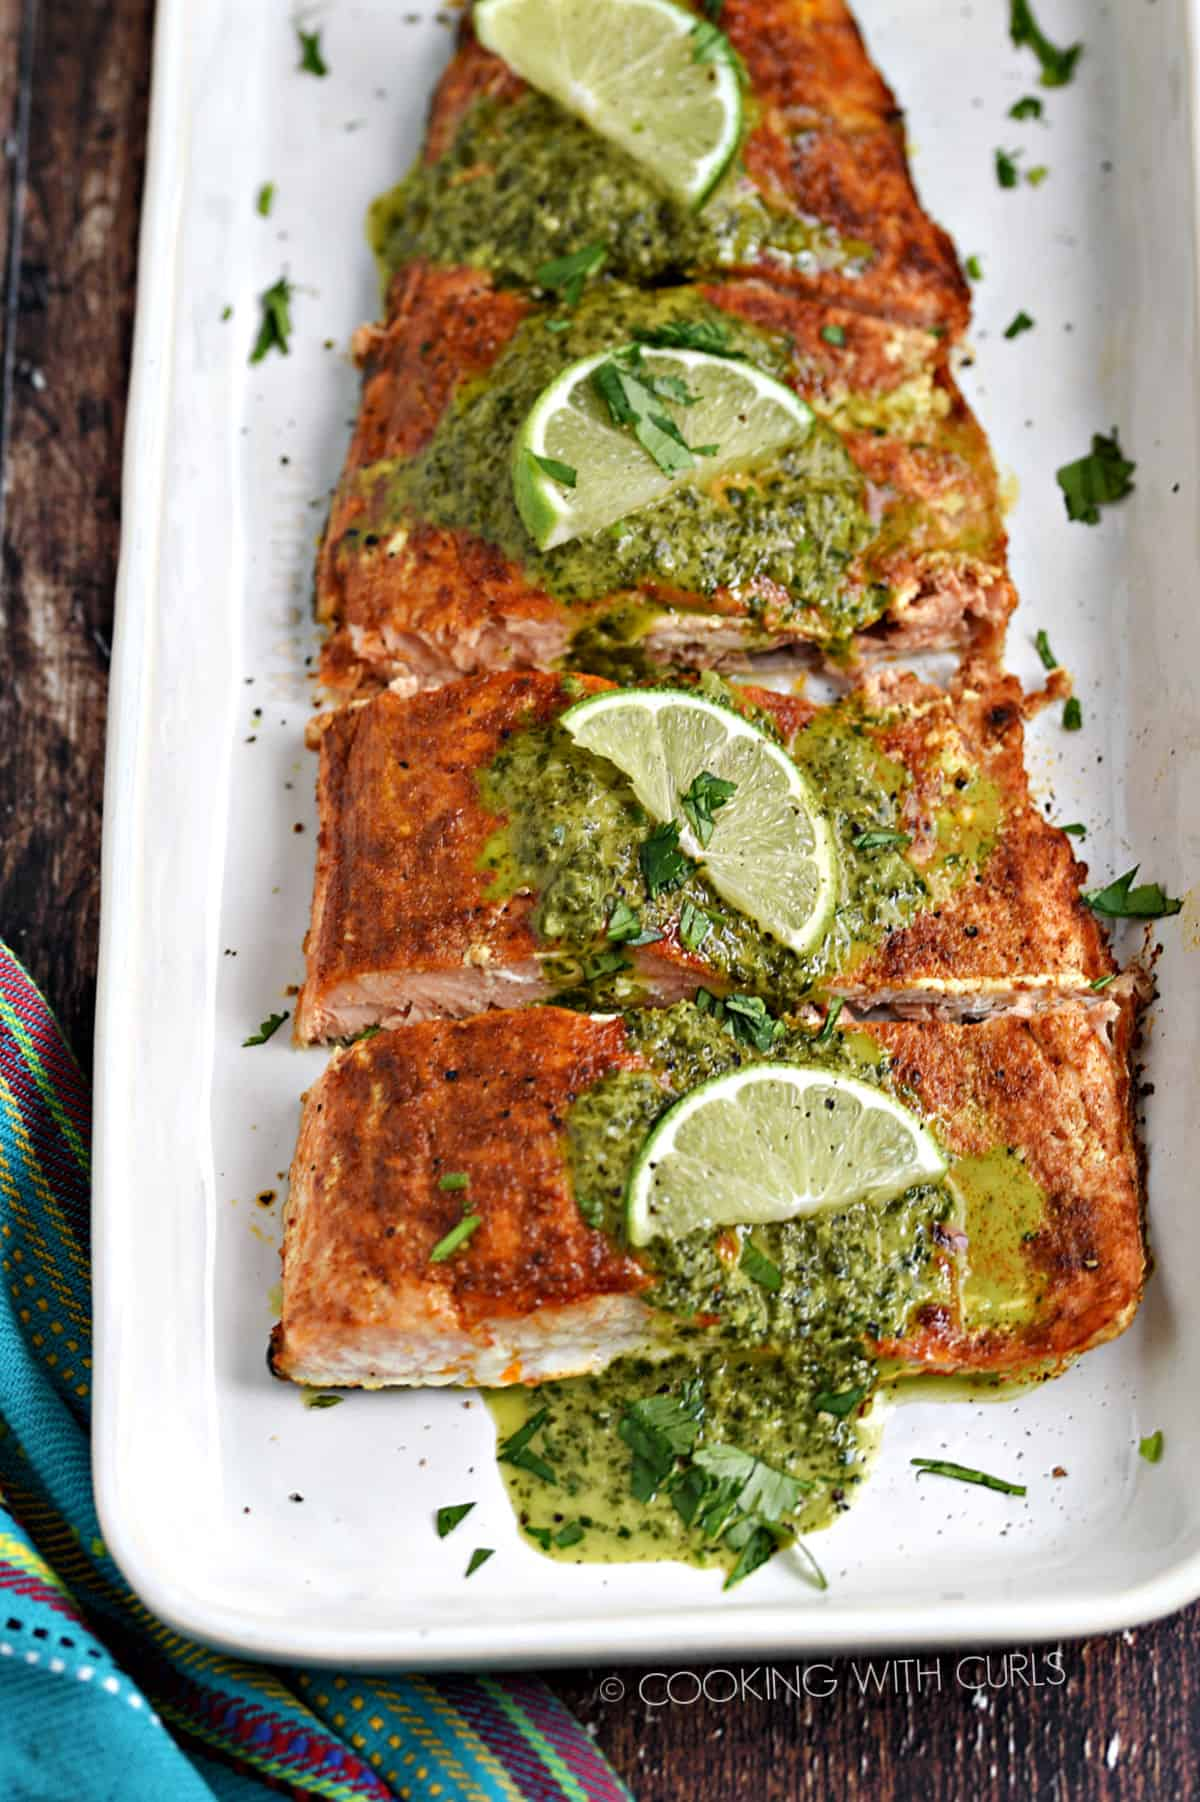 Baked salmon filet topped with cilantro lime sauce on a white platter.